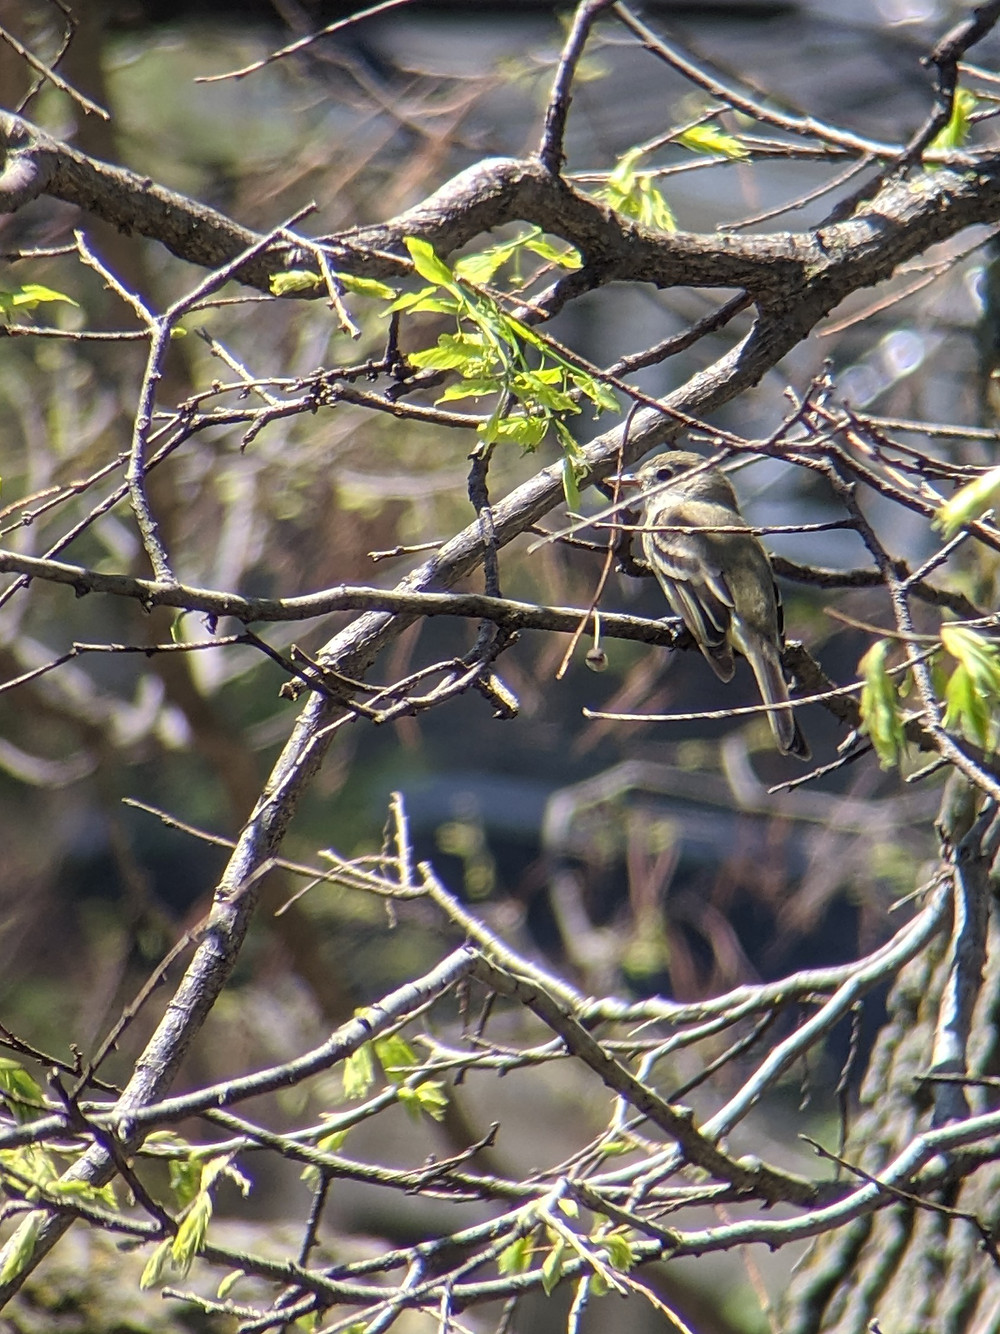 Willow Flycatcher perched on a tree in our backyard